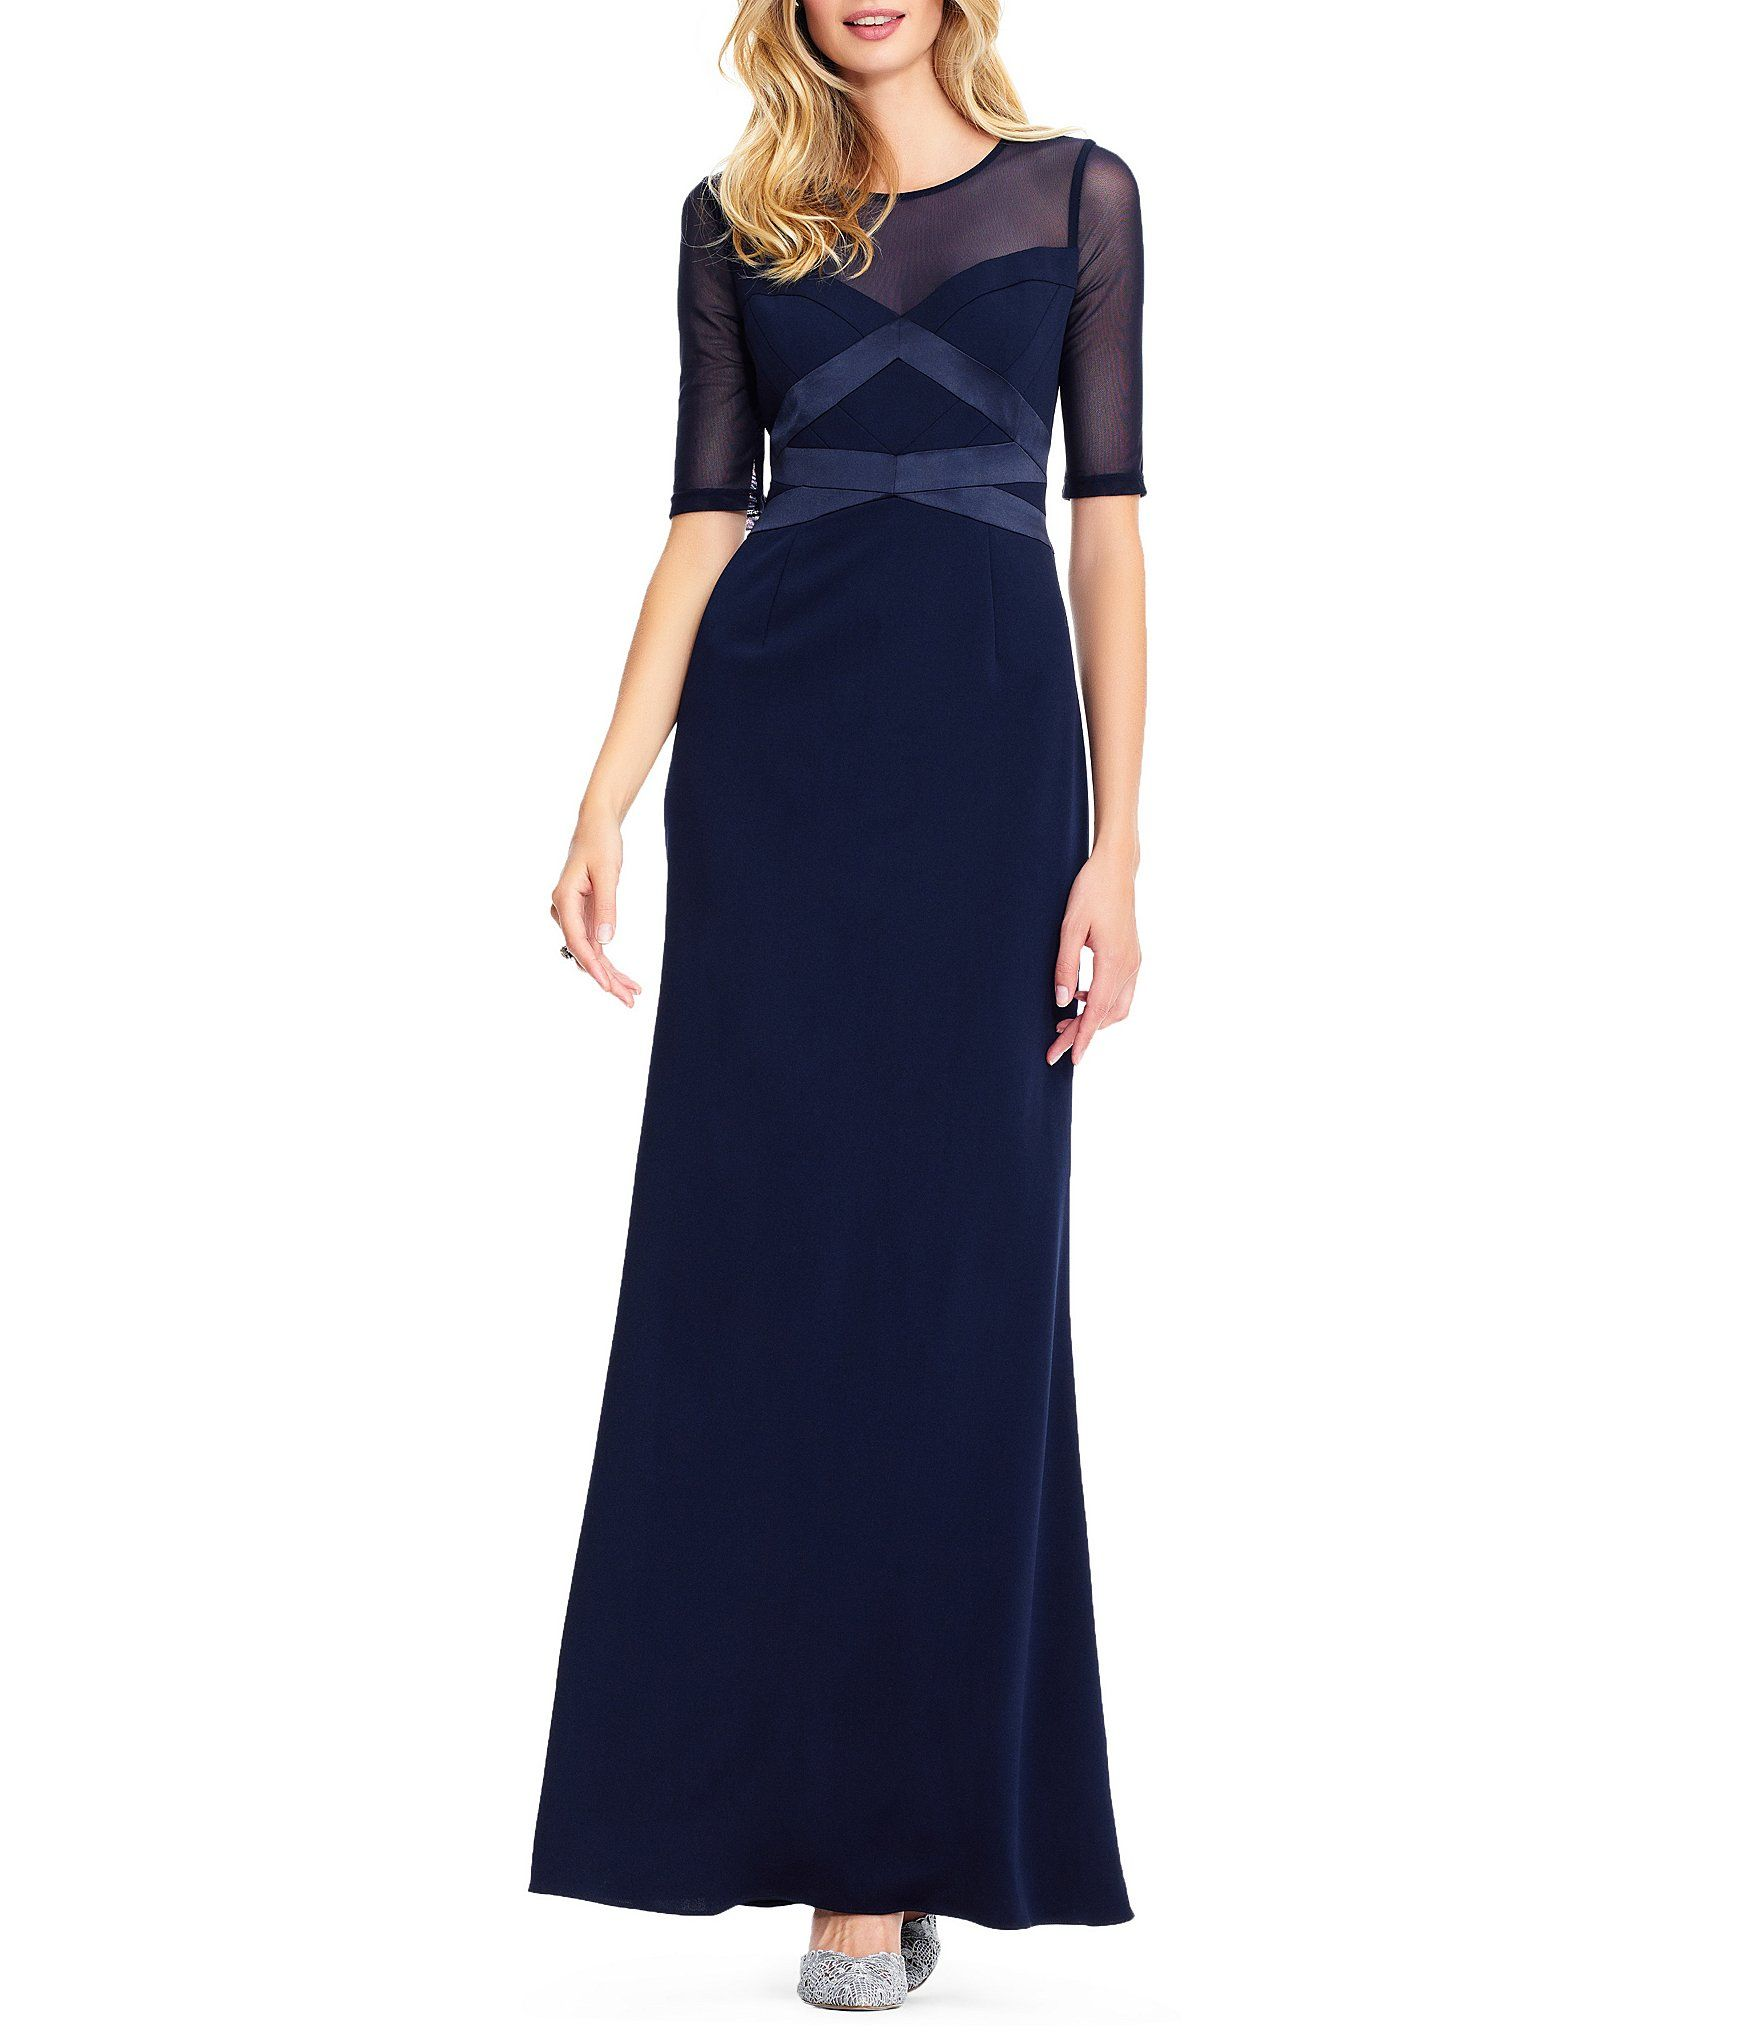 Shop For Adrianna Papell Long Knit Illusion Neckline Crepe Dress At